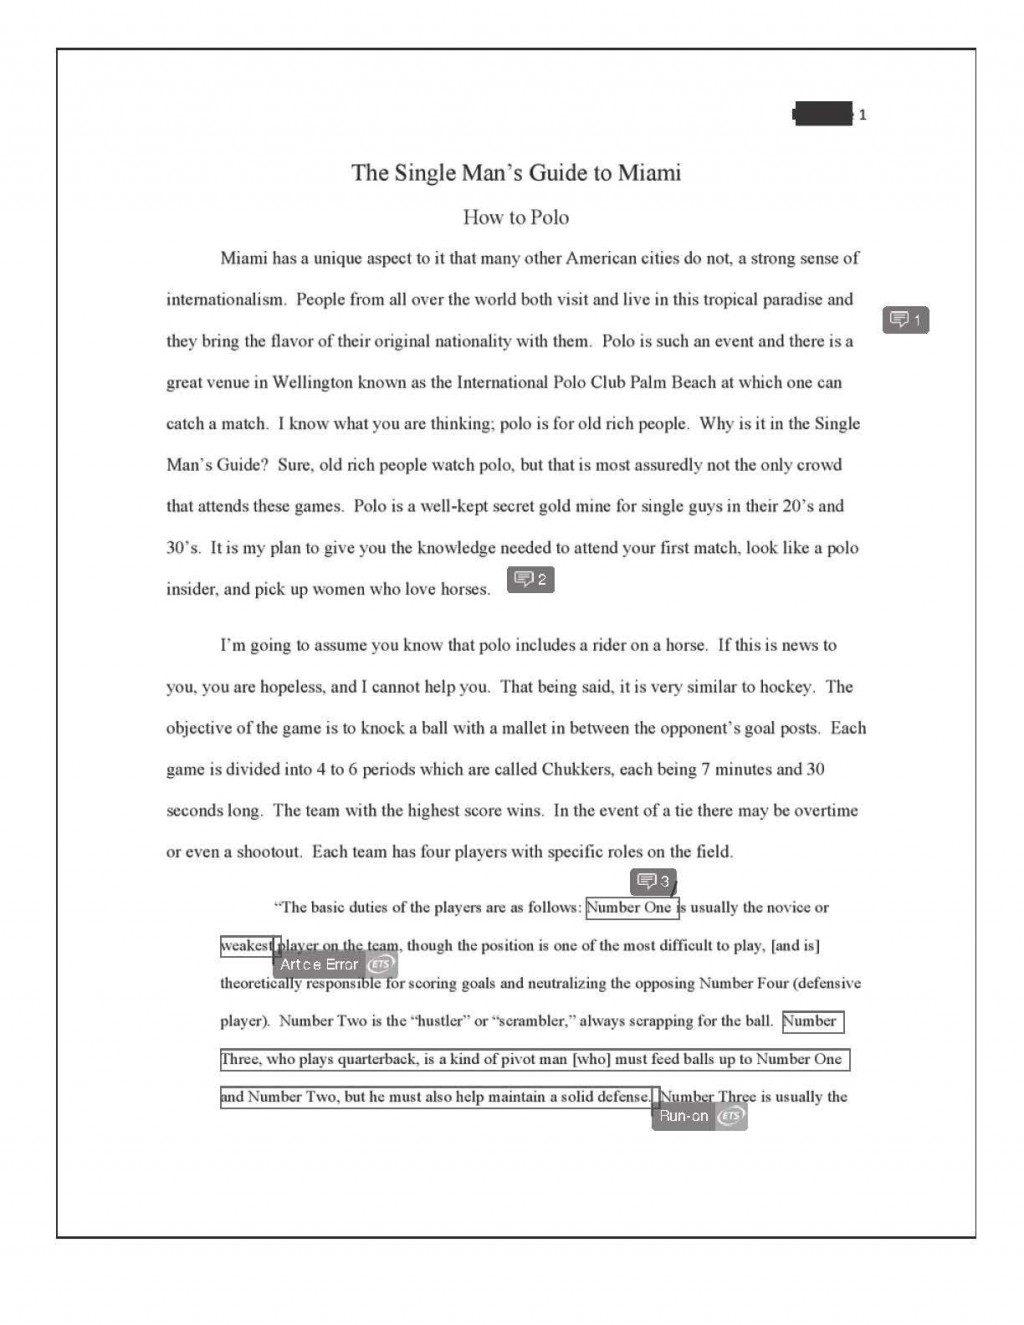 003 Example Of An Essay About Education Examplesative Essays Writing Utopia Instructionative Final How To Polo Redacted P Quiz Prewriting Quizlet Staggering Examples Informative For High School Expository Middle Samples Large